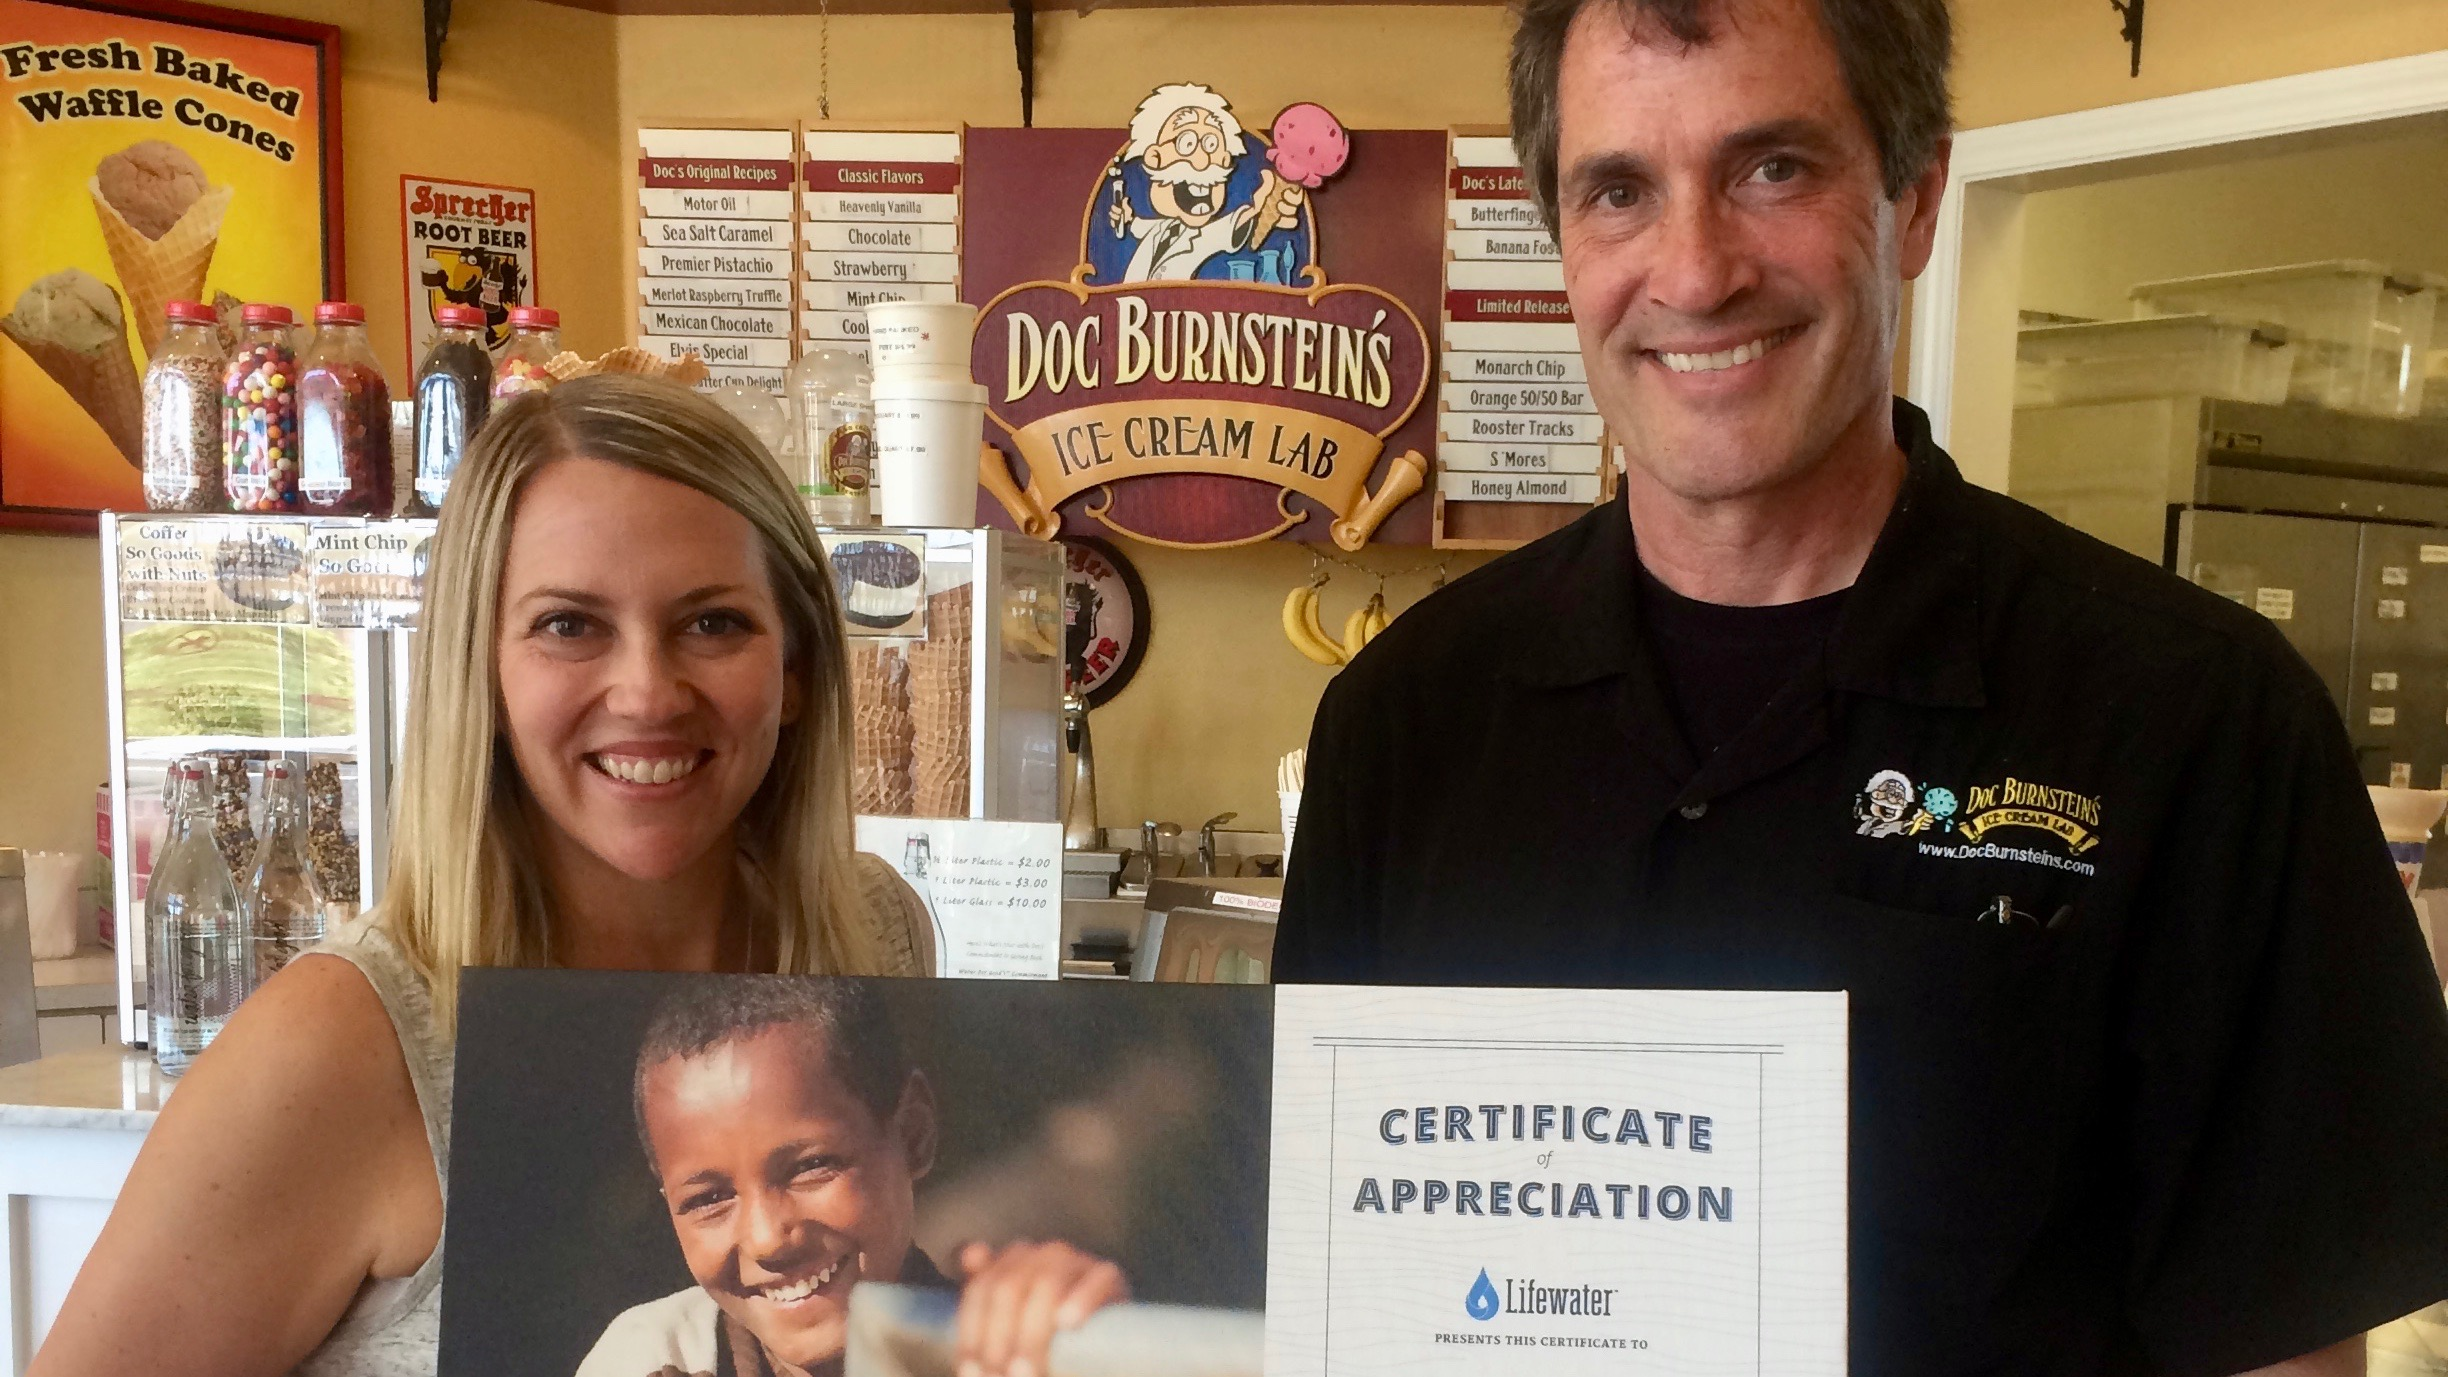 lifewater presents doc burnsteins with certificate of appreciation